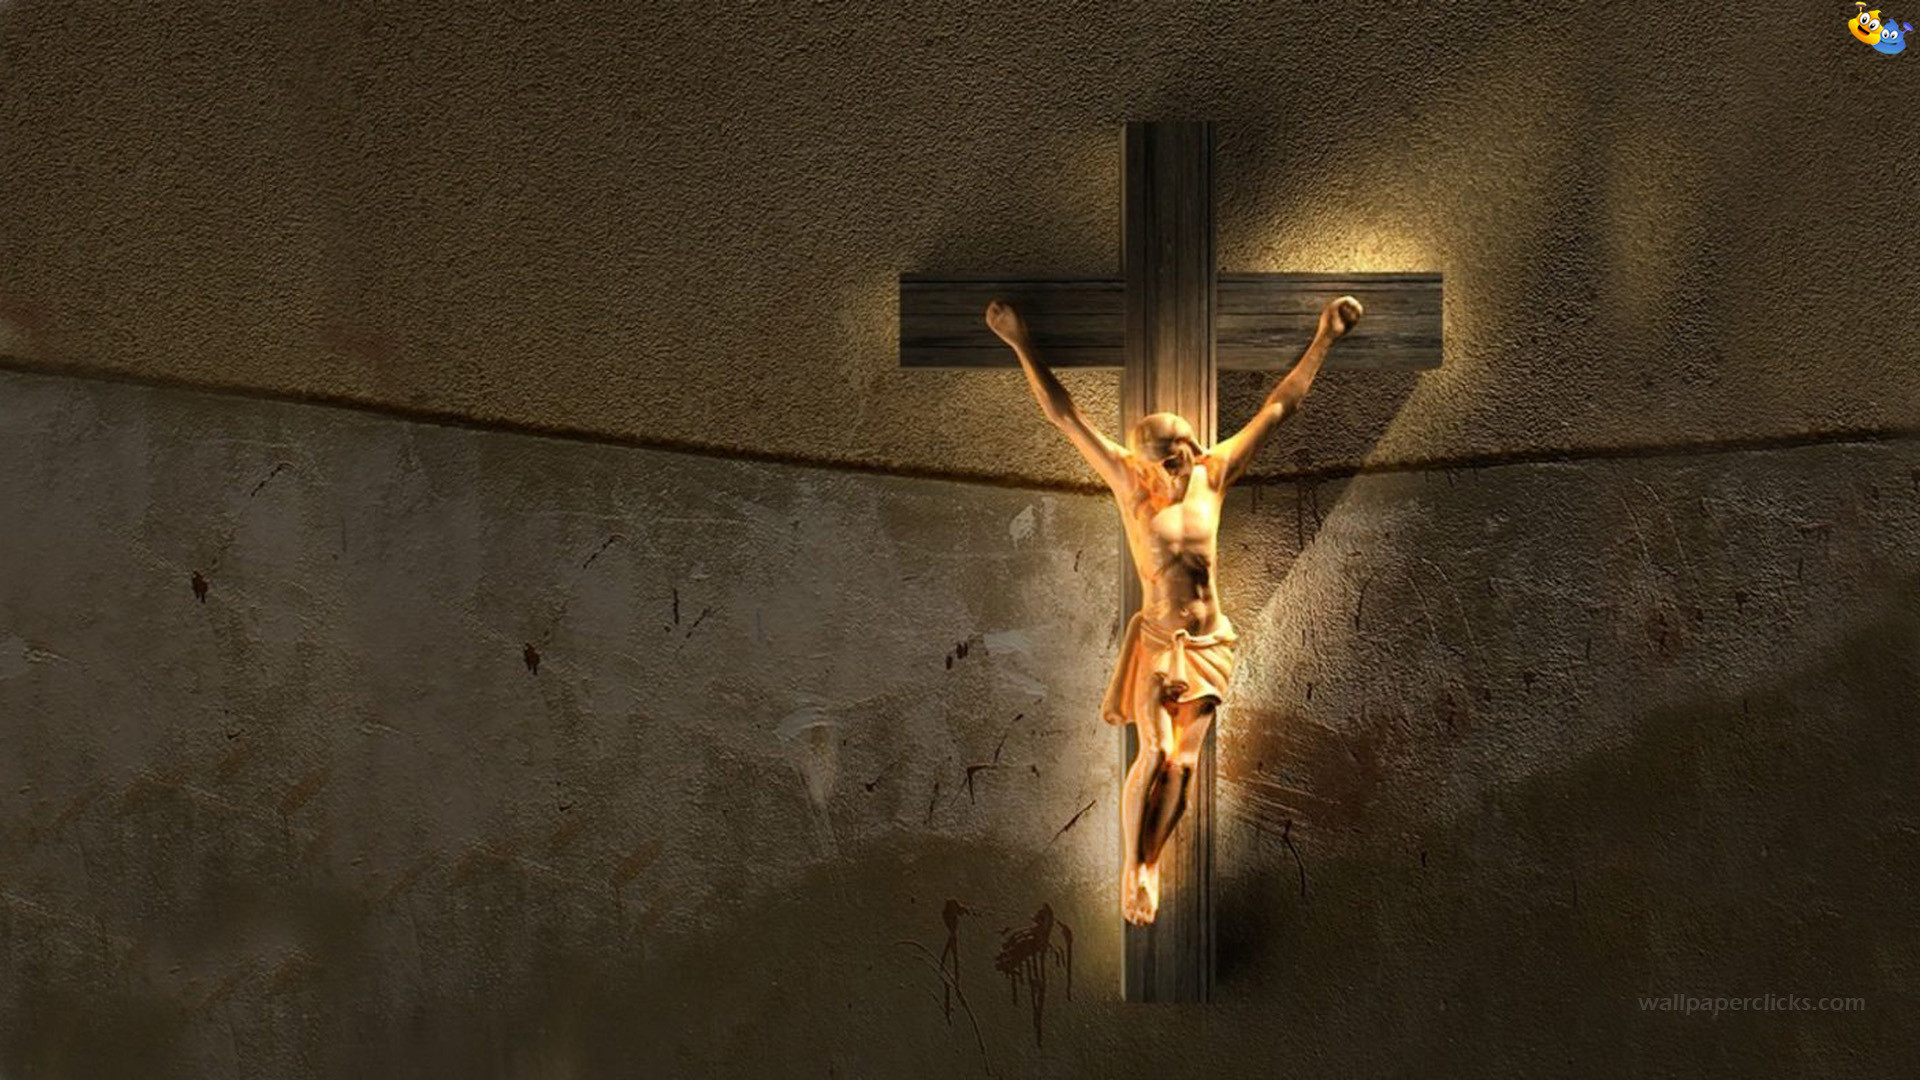 jesus wallpaper android - photo #27